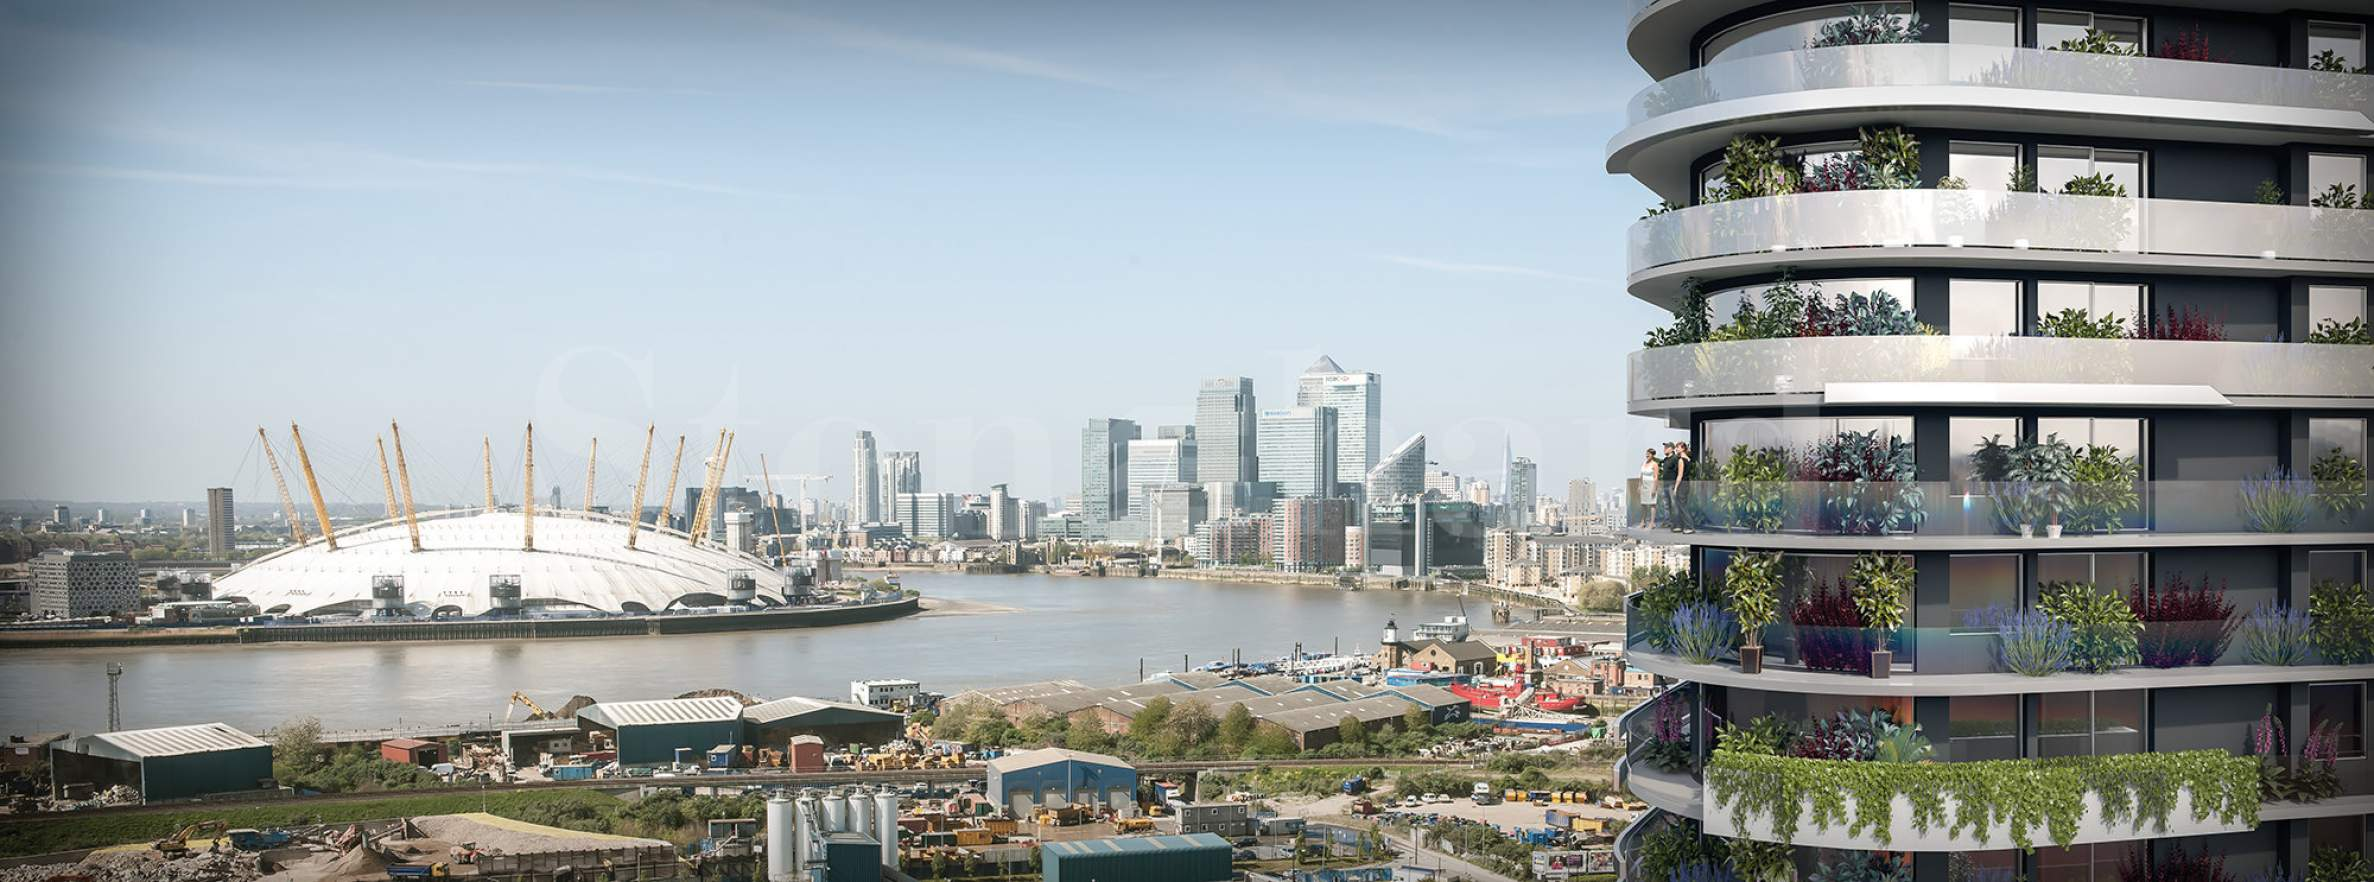 New residential tower near Royal Victoria Dock1 - Stonehard